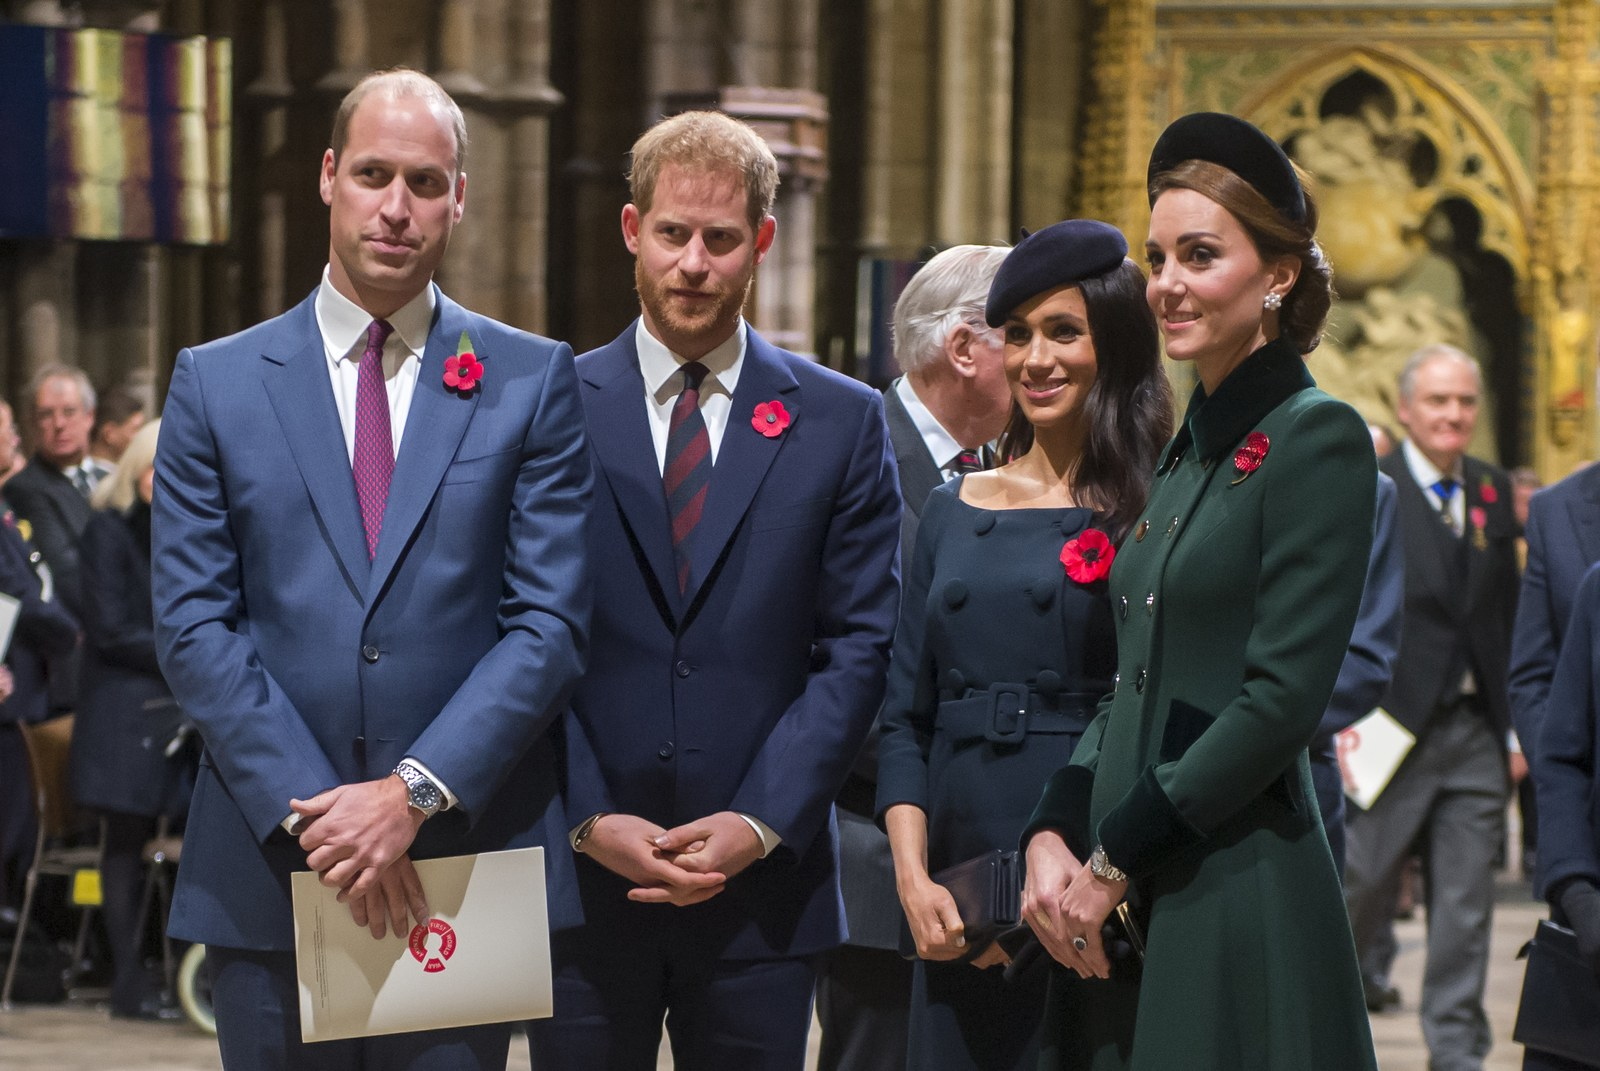 Prince William Prince Harry Meghan Markle and Kate Middleton at a service at Westminster Abbey in November 2018.